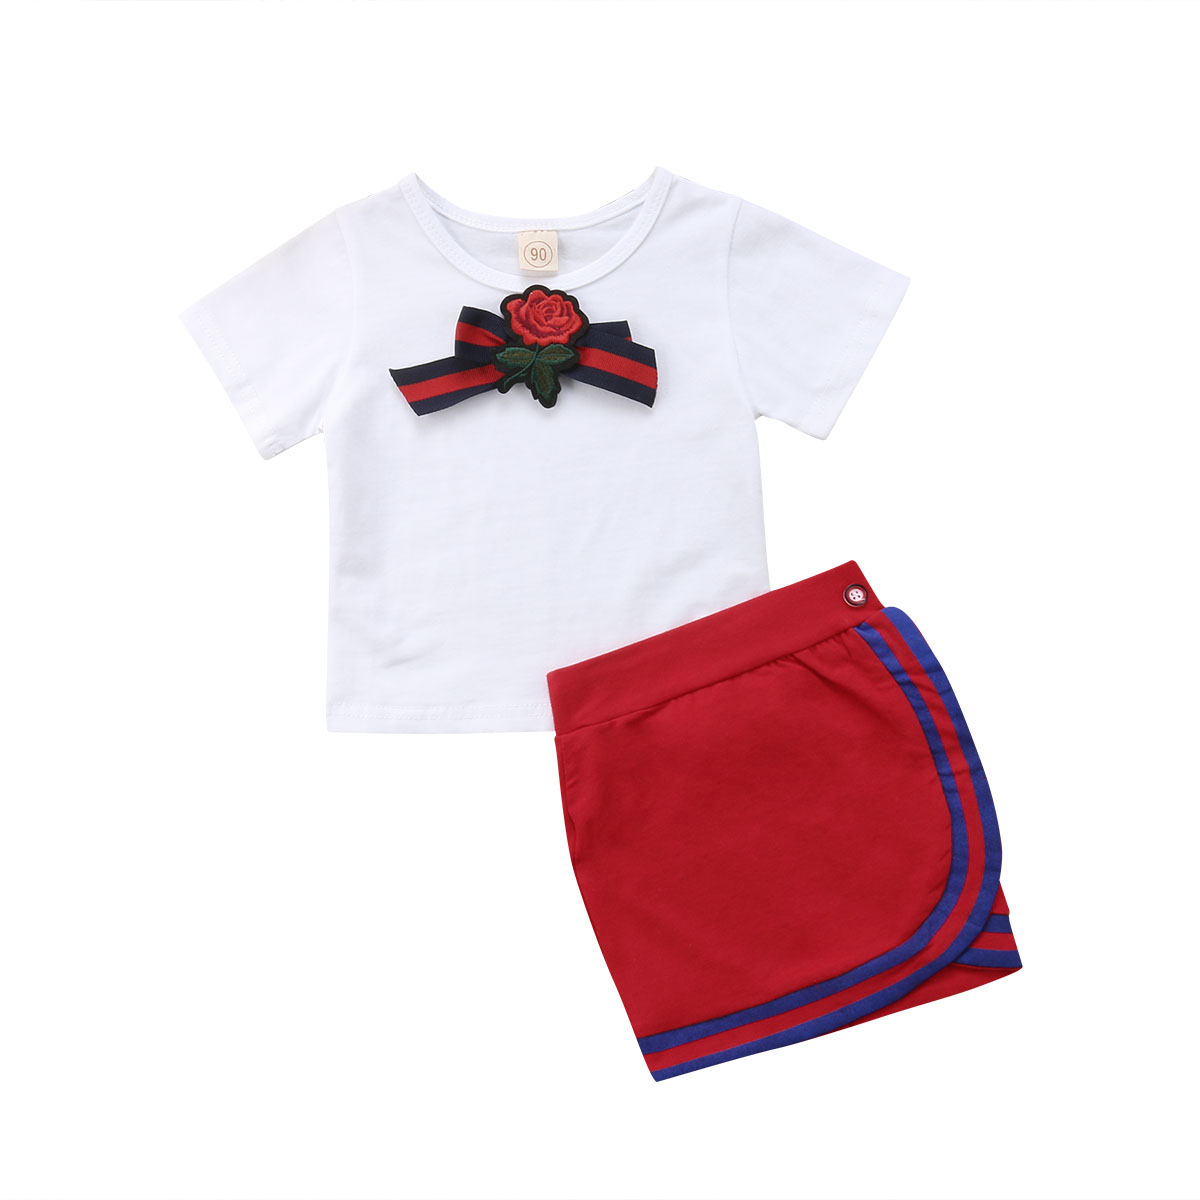 Newborn Kids Baby Girls Clothes Sets Bow Flower Tie Tops Short Sleeve T-shirt Skirts 2pcs Cotton Outfits Set Girl 1-5T цены